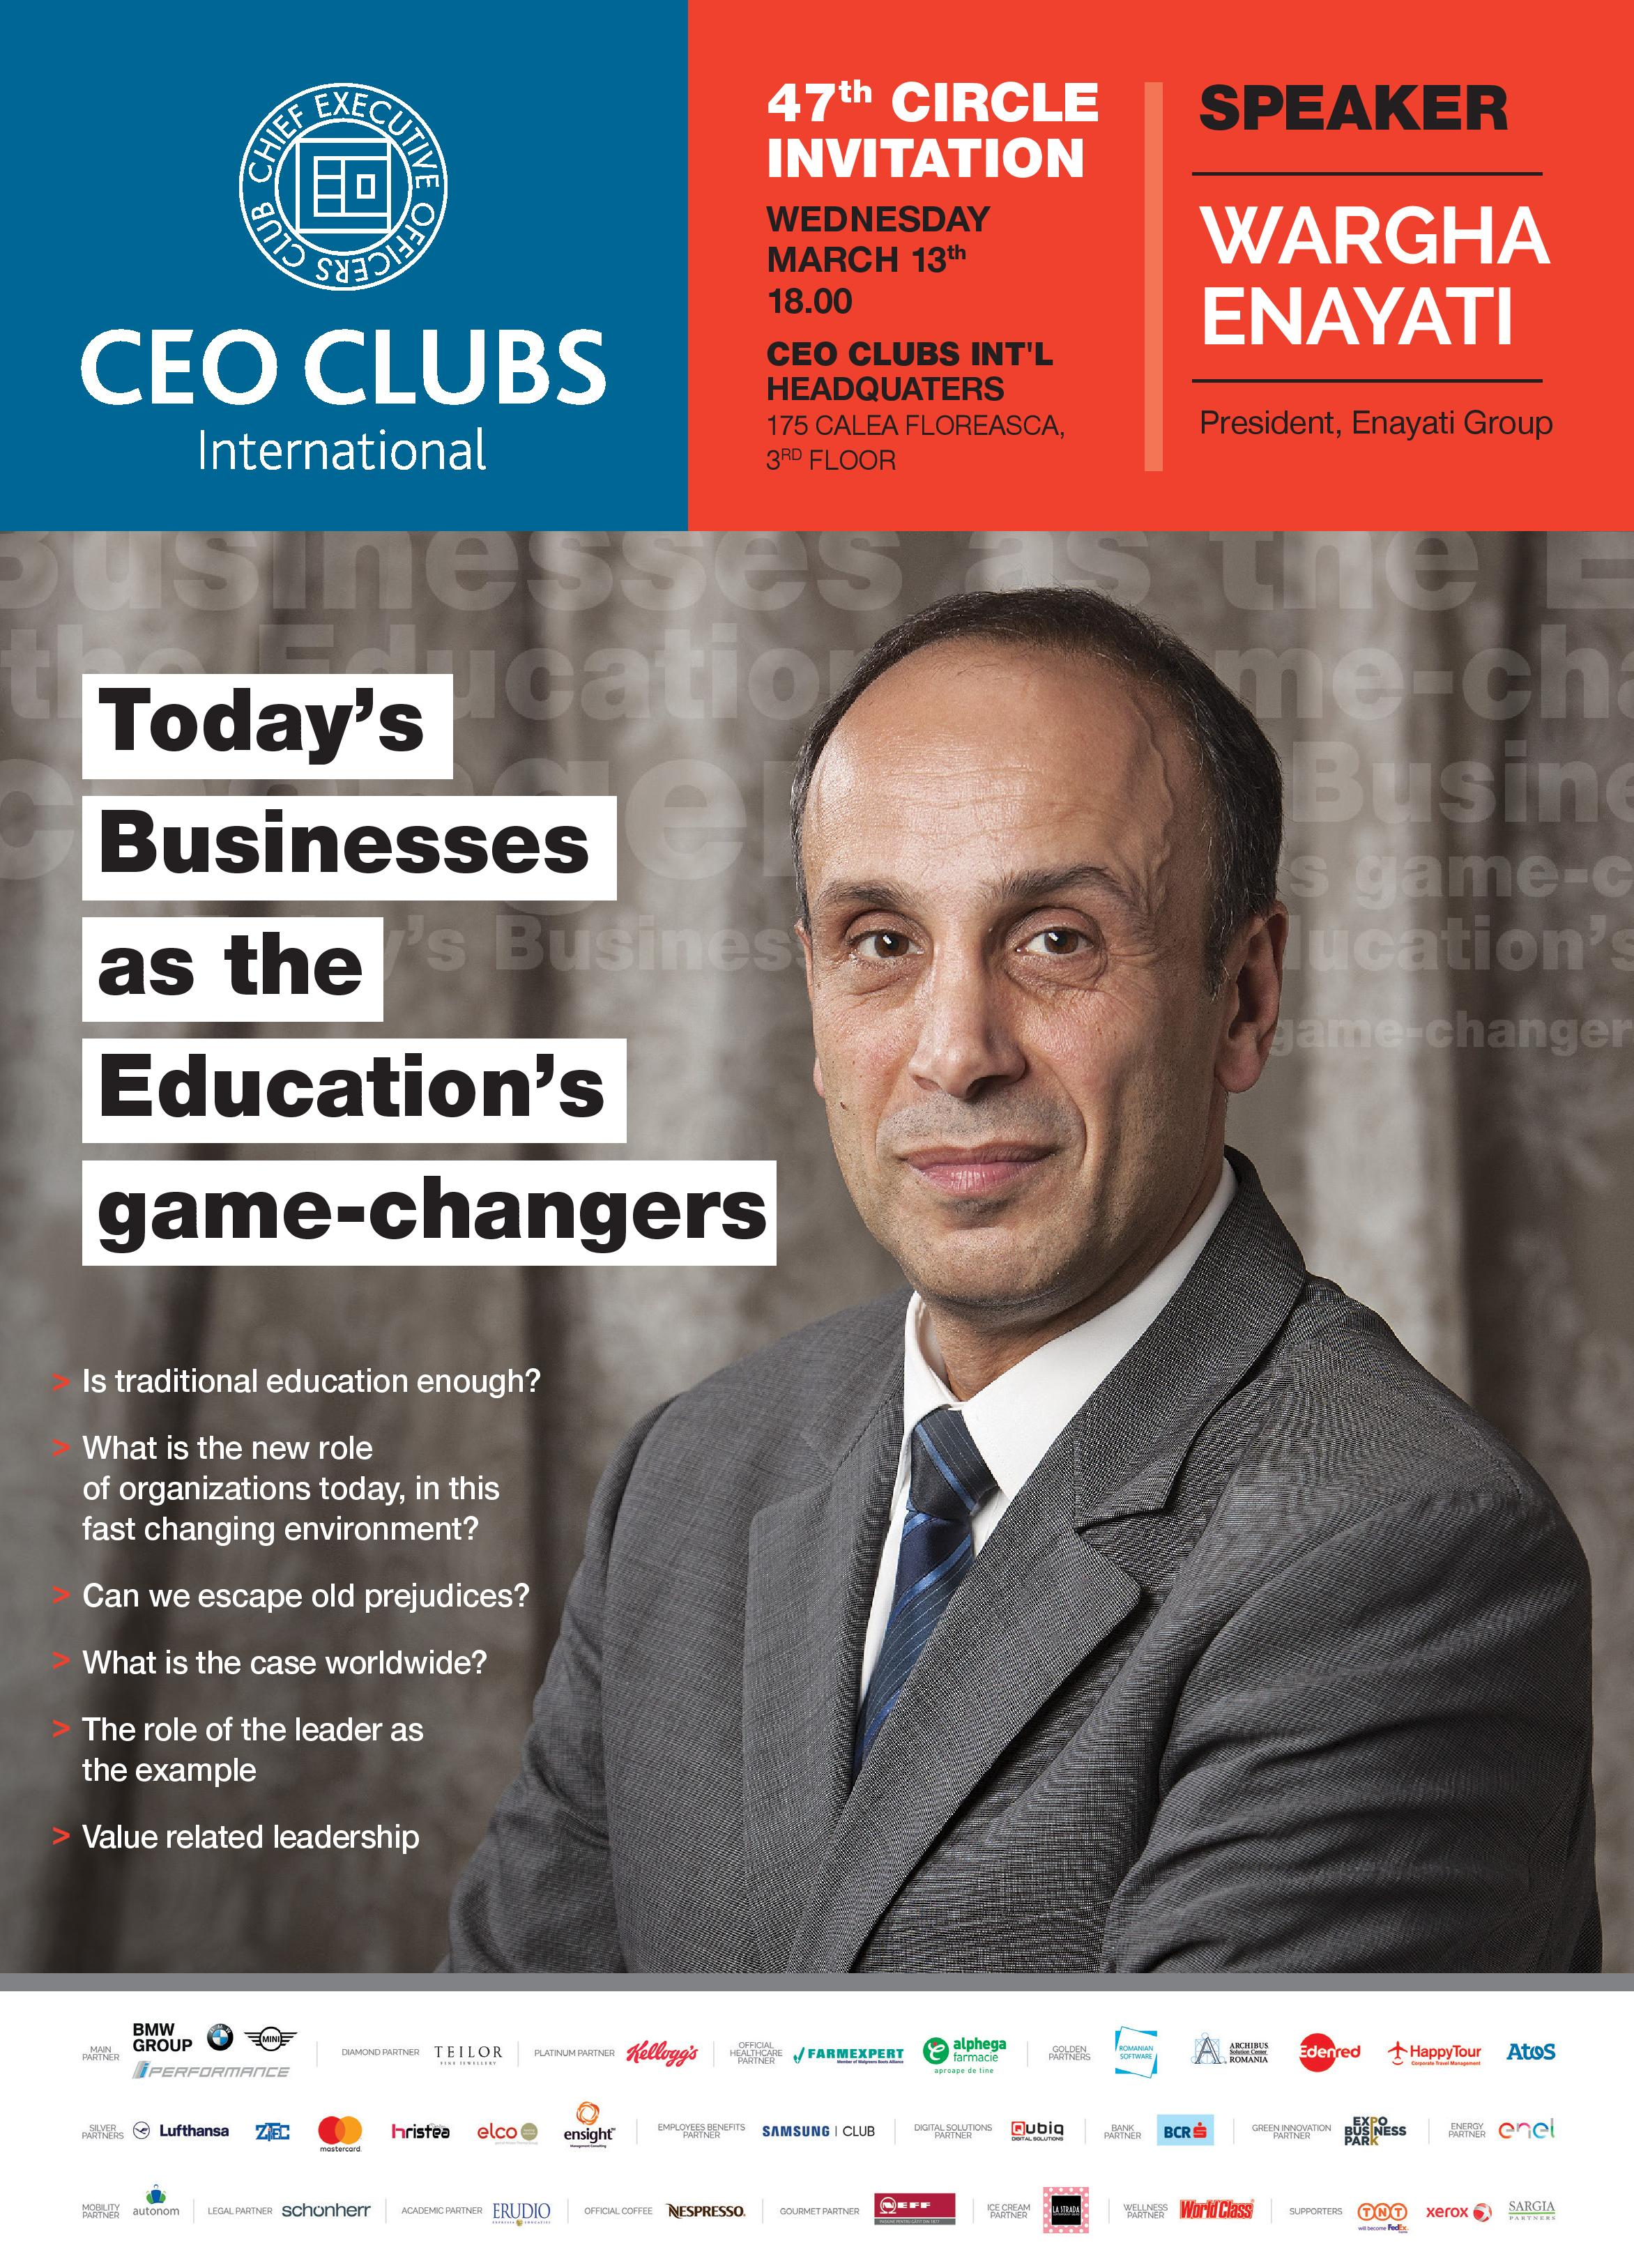 47th Circle: Today's Businesses as the Education's game-changers